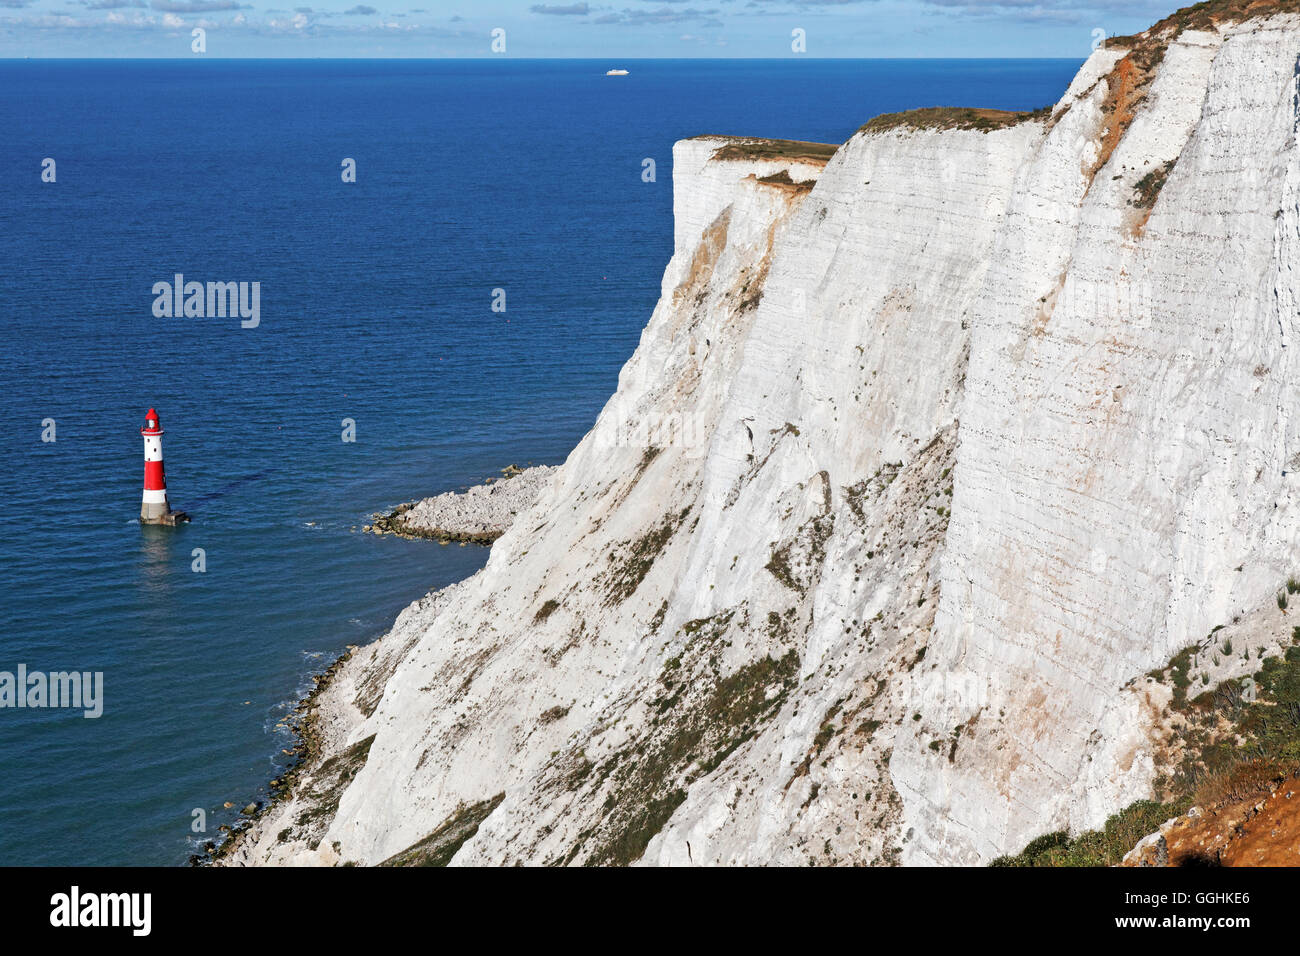 Chalk cliffs, Beachy Head, East Sussex, England, Great Britain - Stock Image